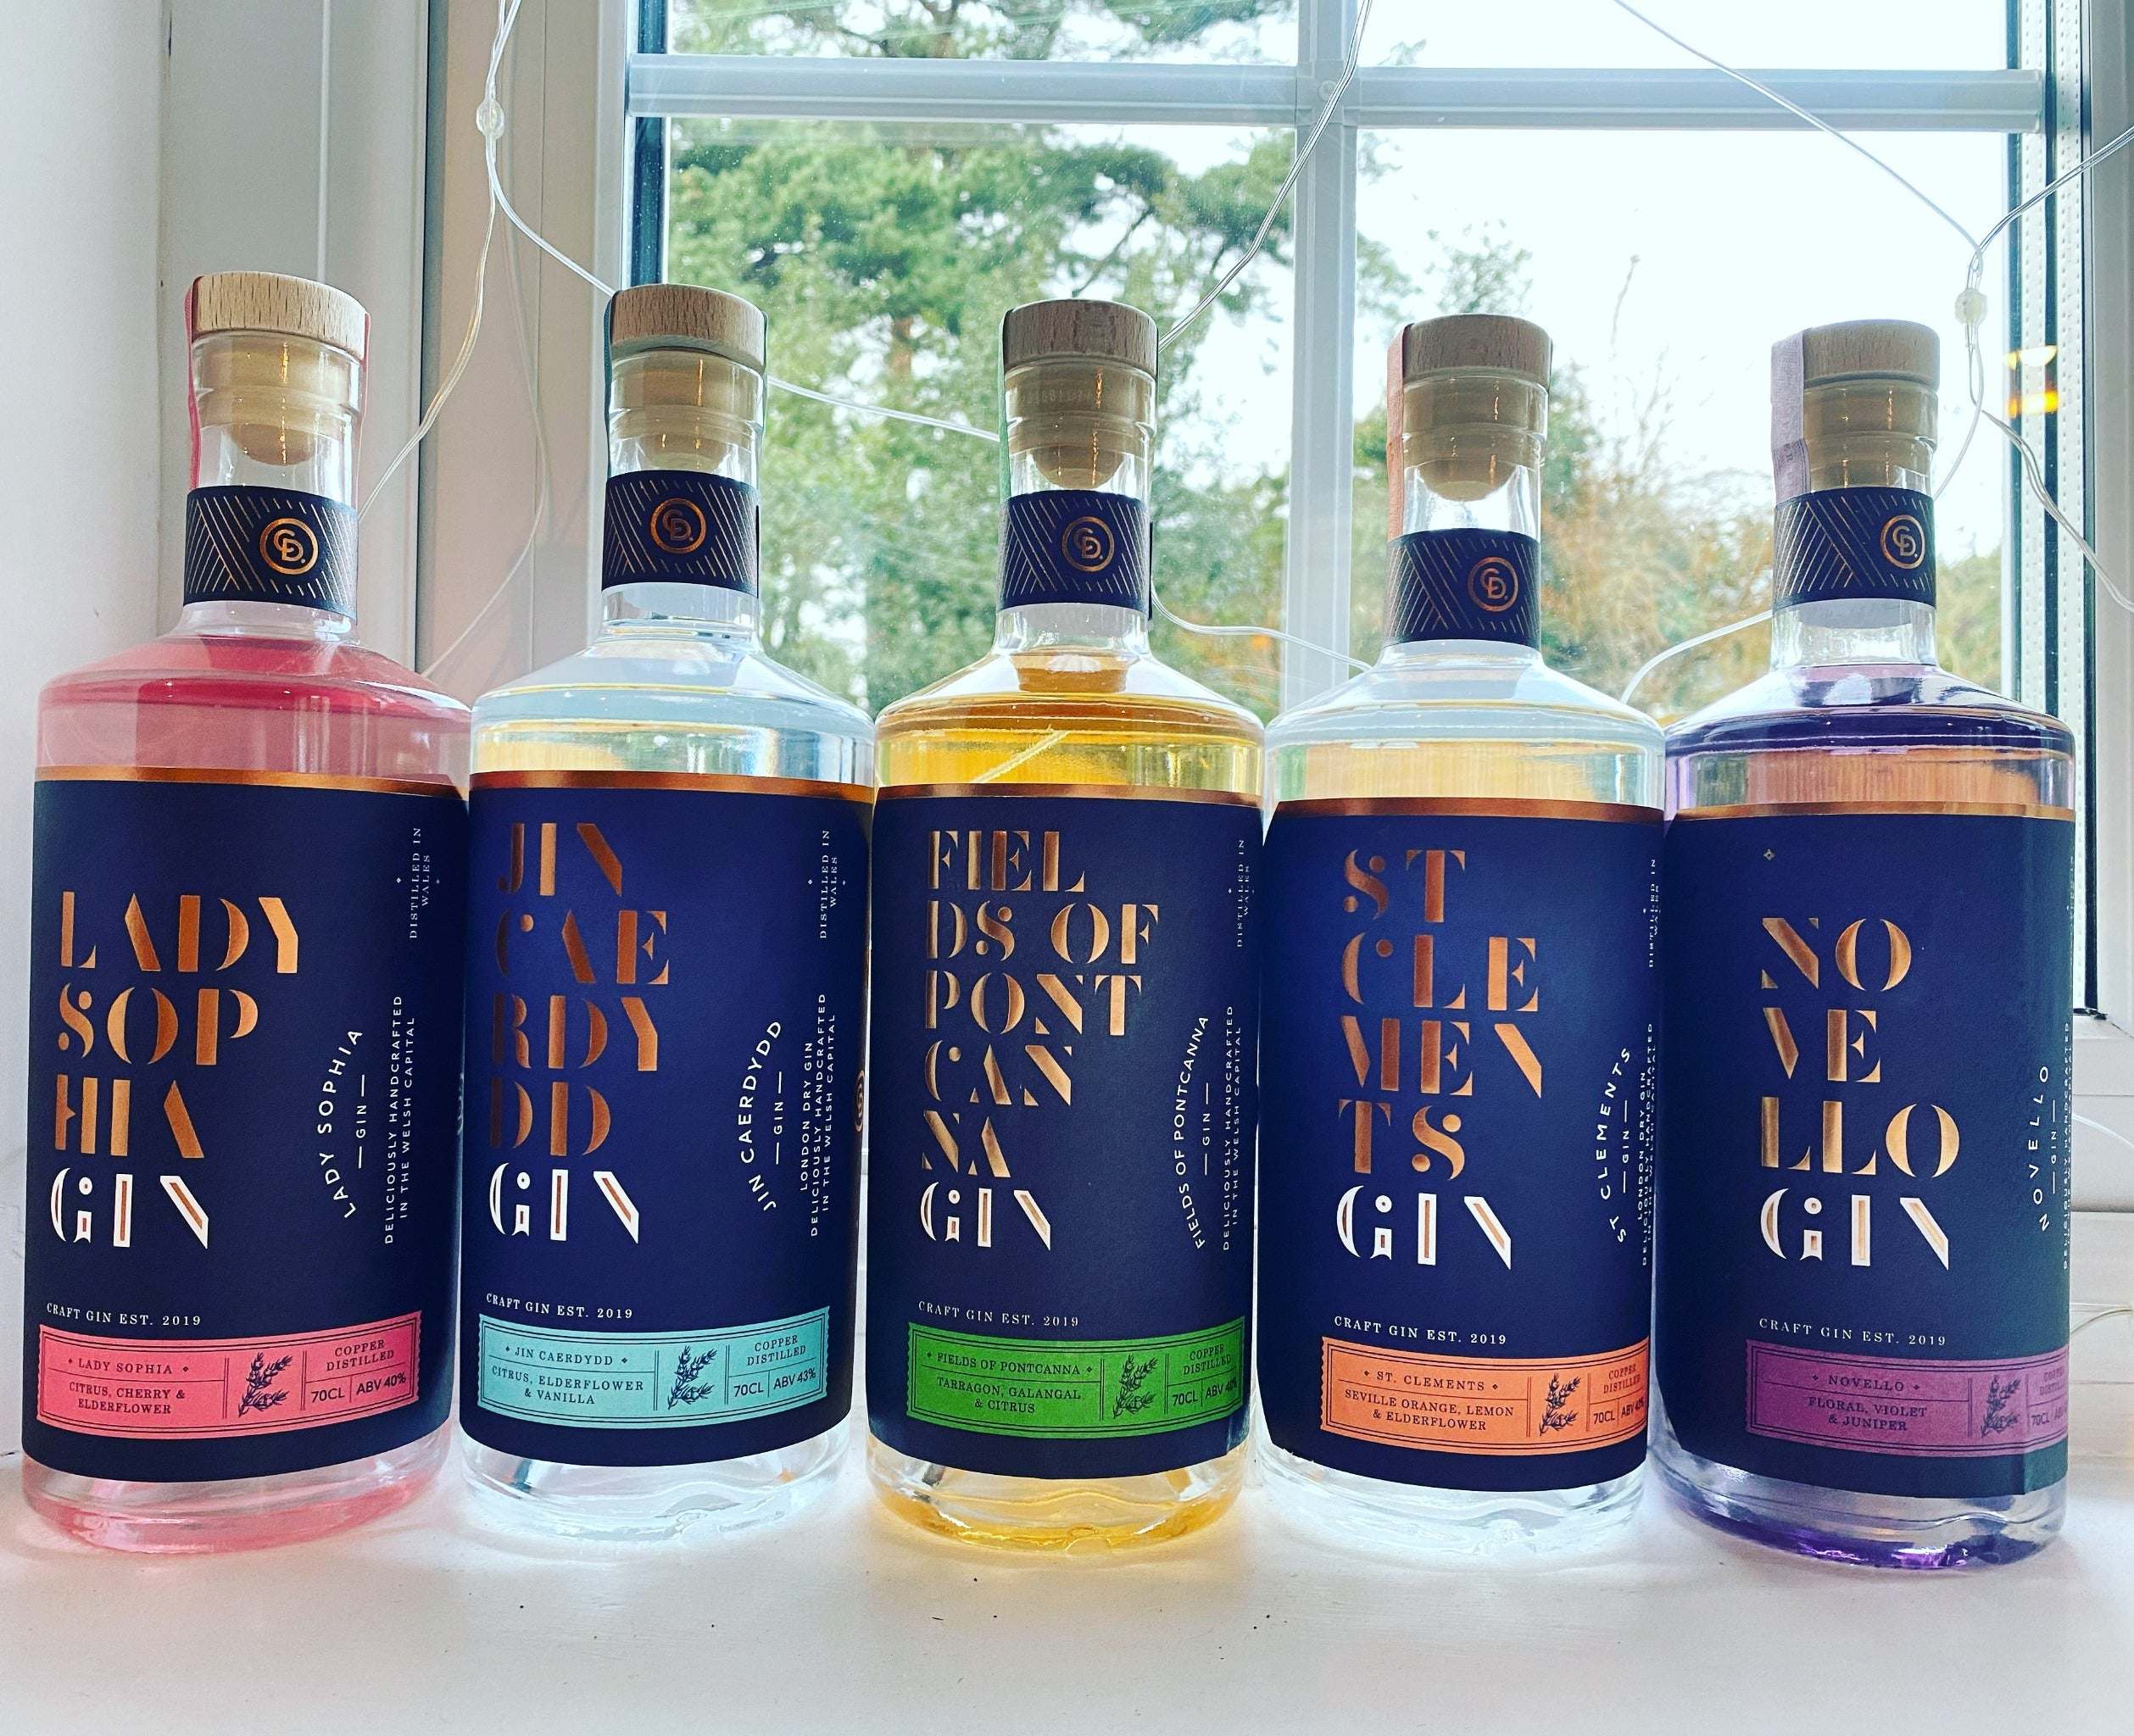 10% Off - Cardiff Distillery, St Clements Gin 70cl